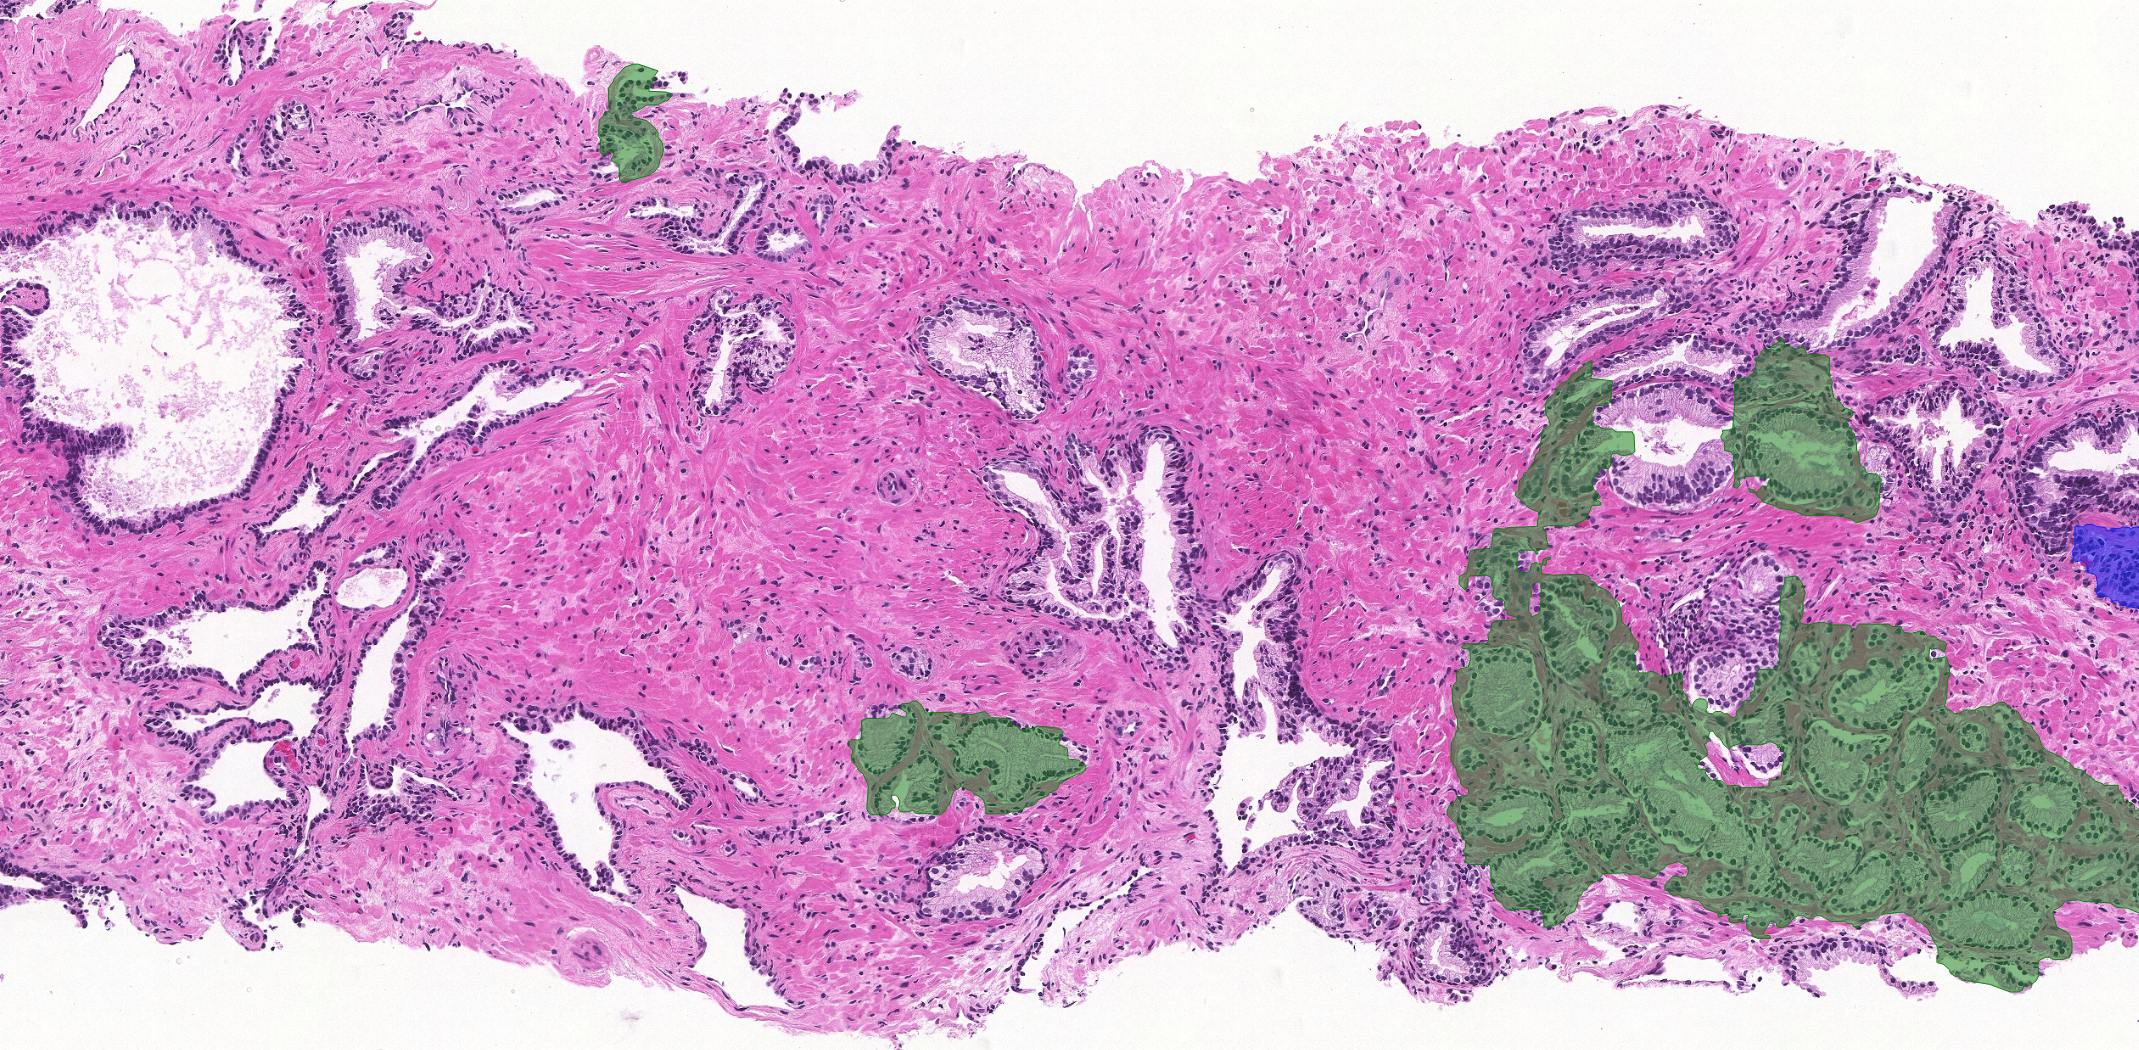 prostate with analysis